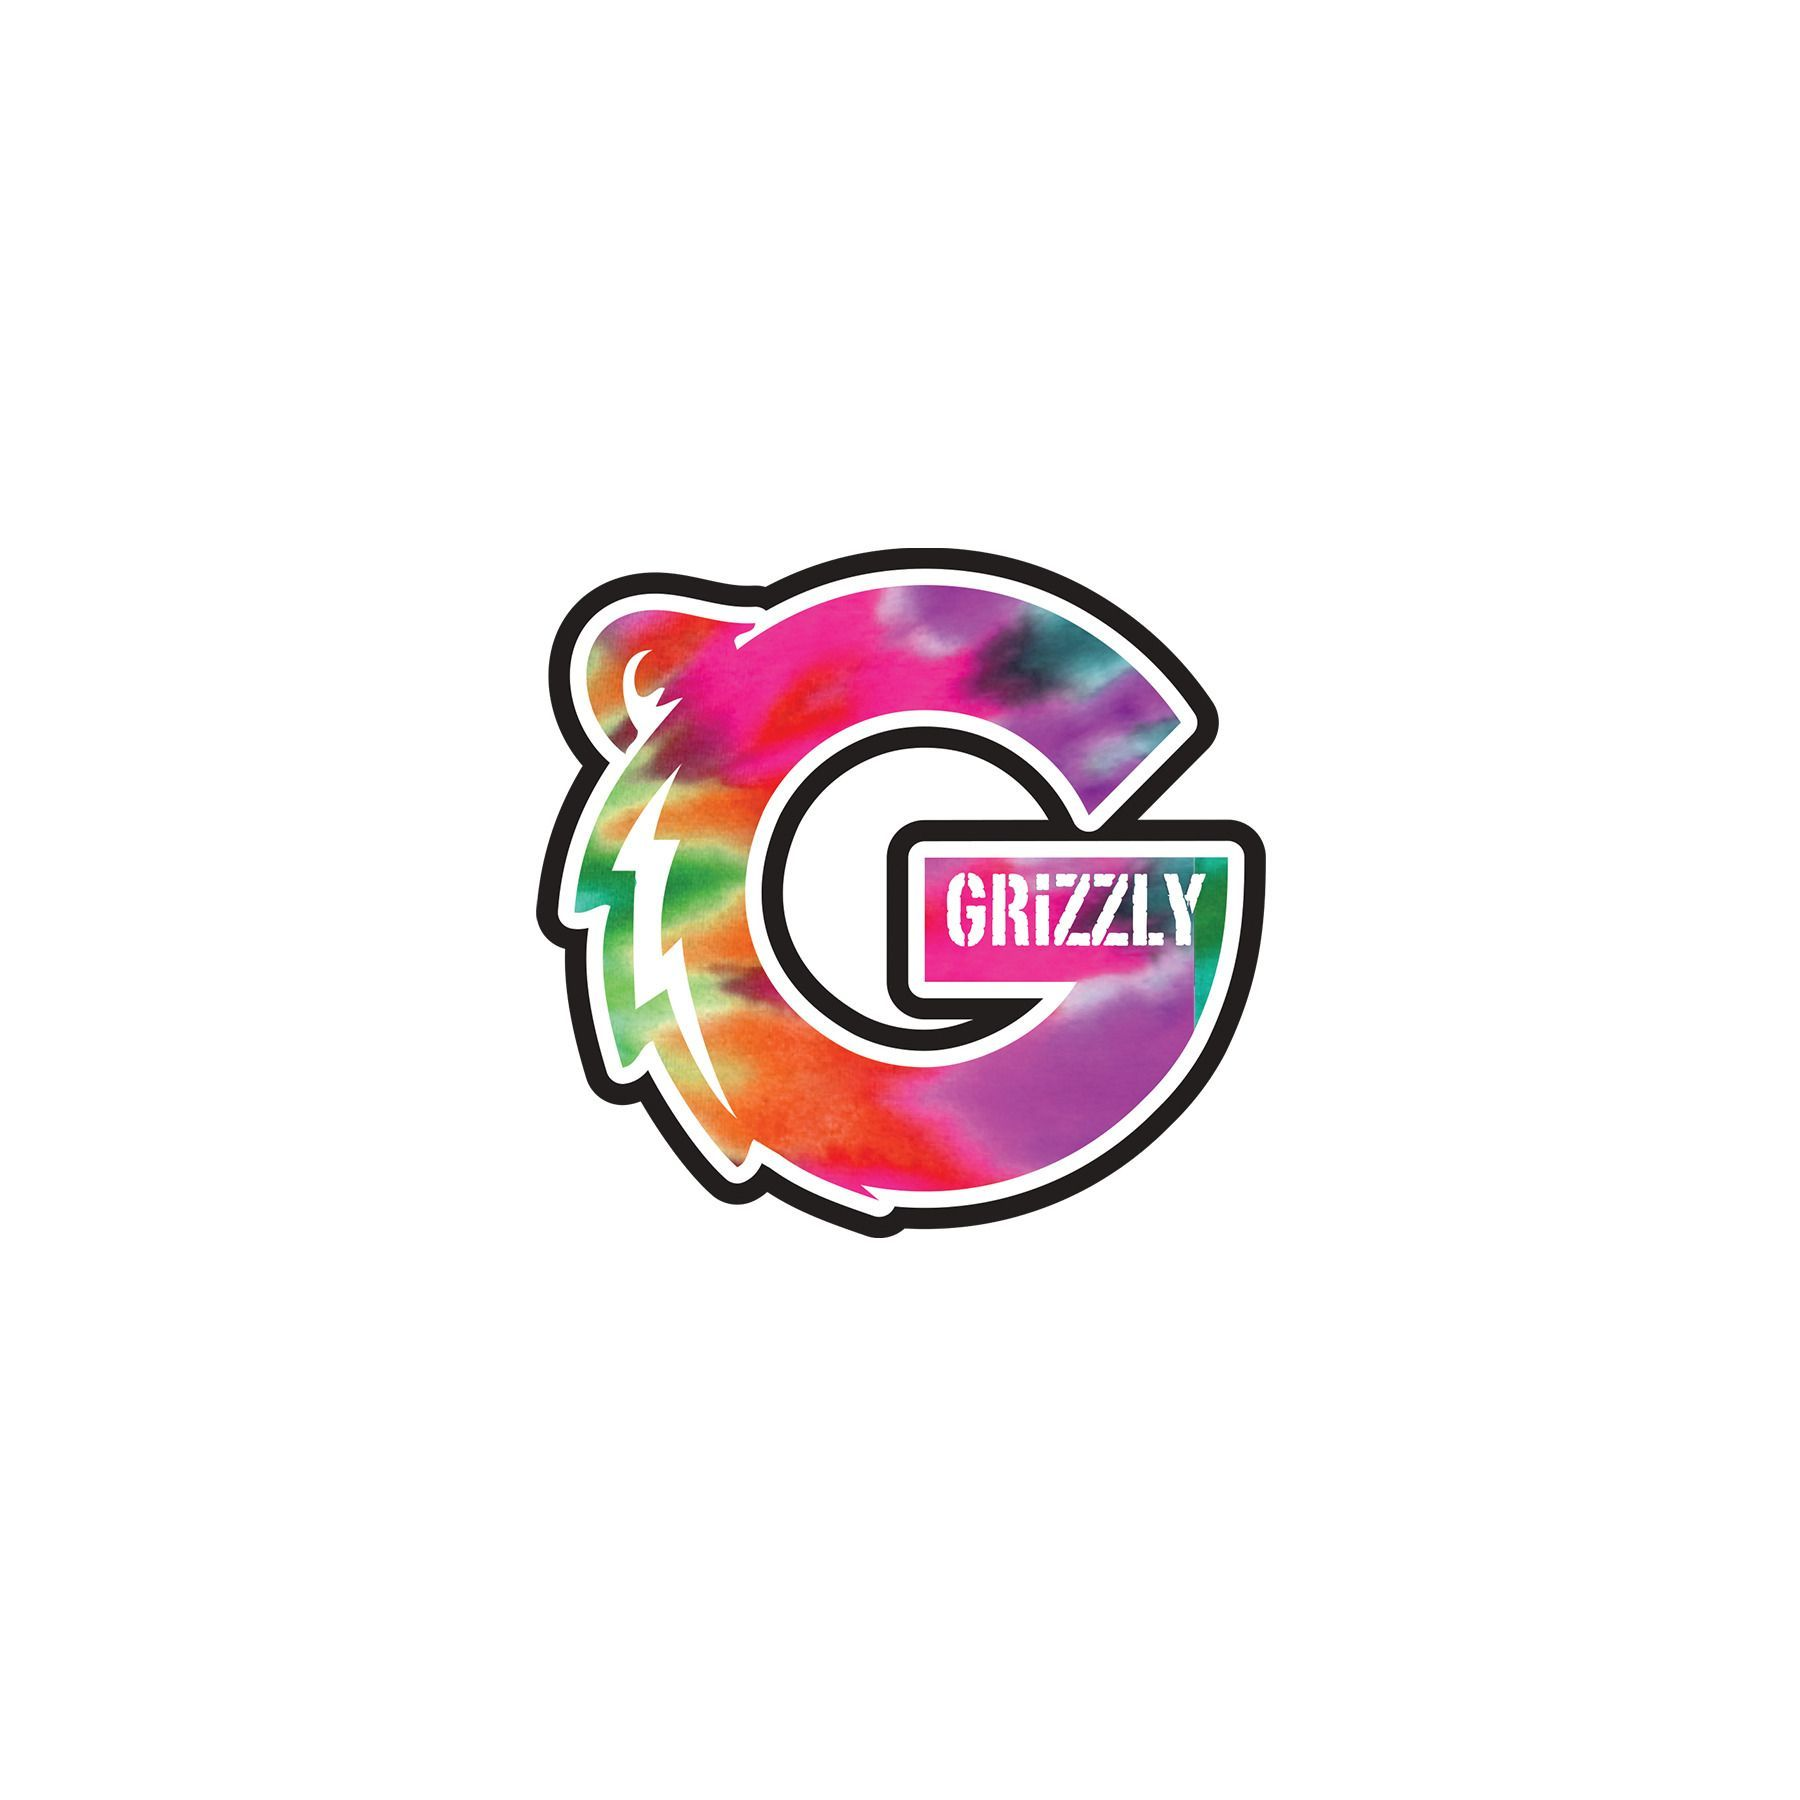 Grizzly Grip Wallpapers Wallpaper Cave